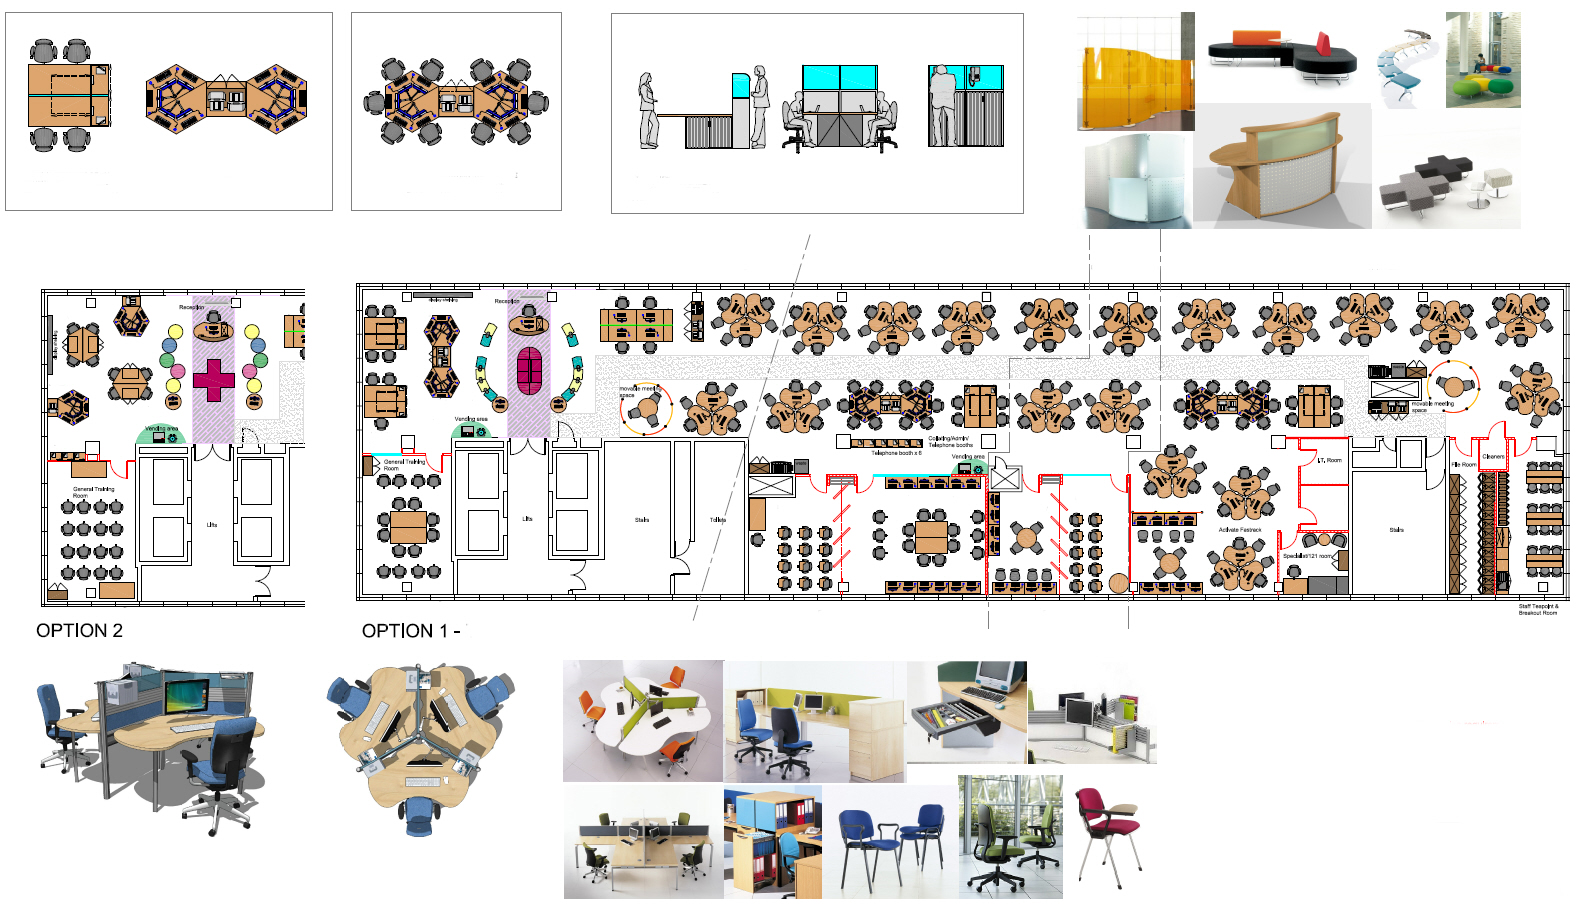 Office space planning design addvance business solutions for Office space planner online